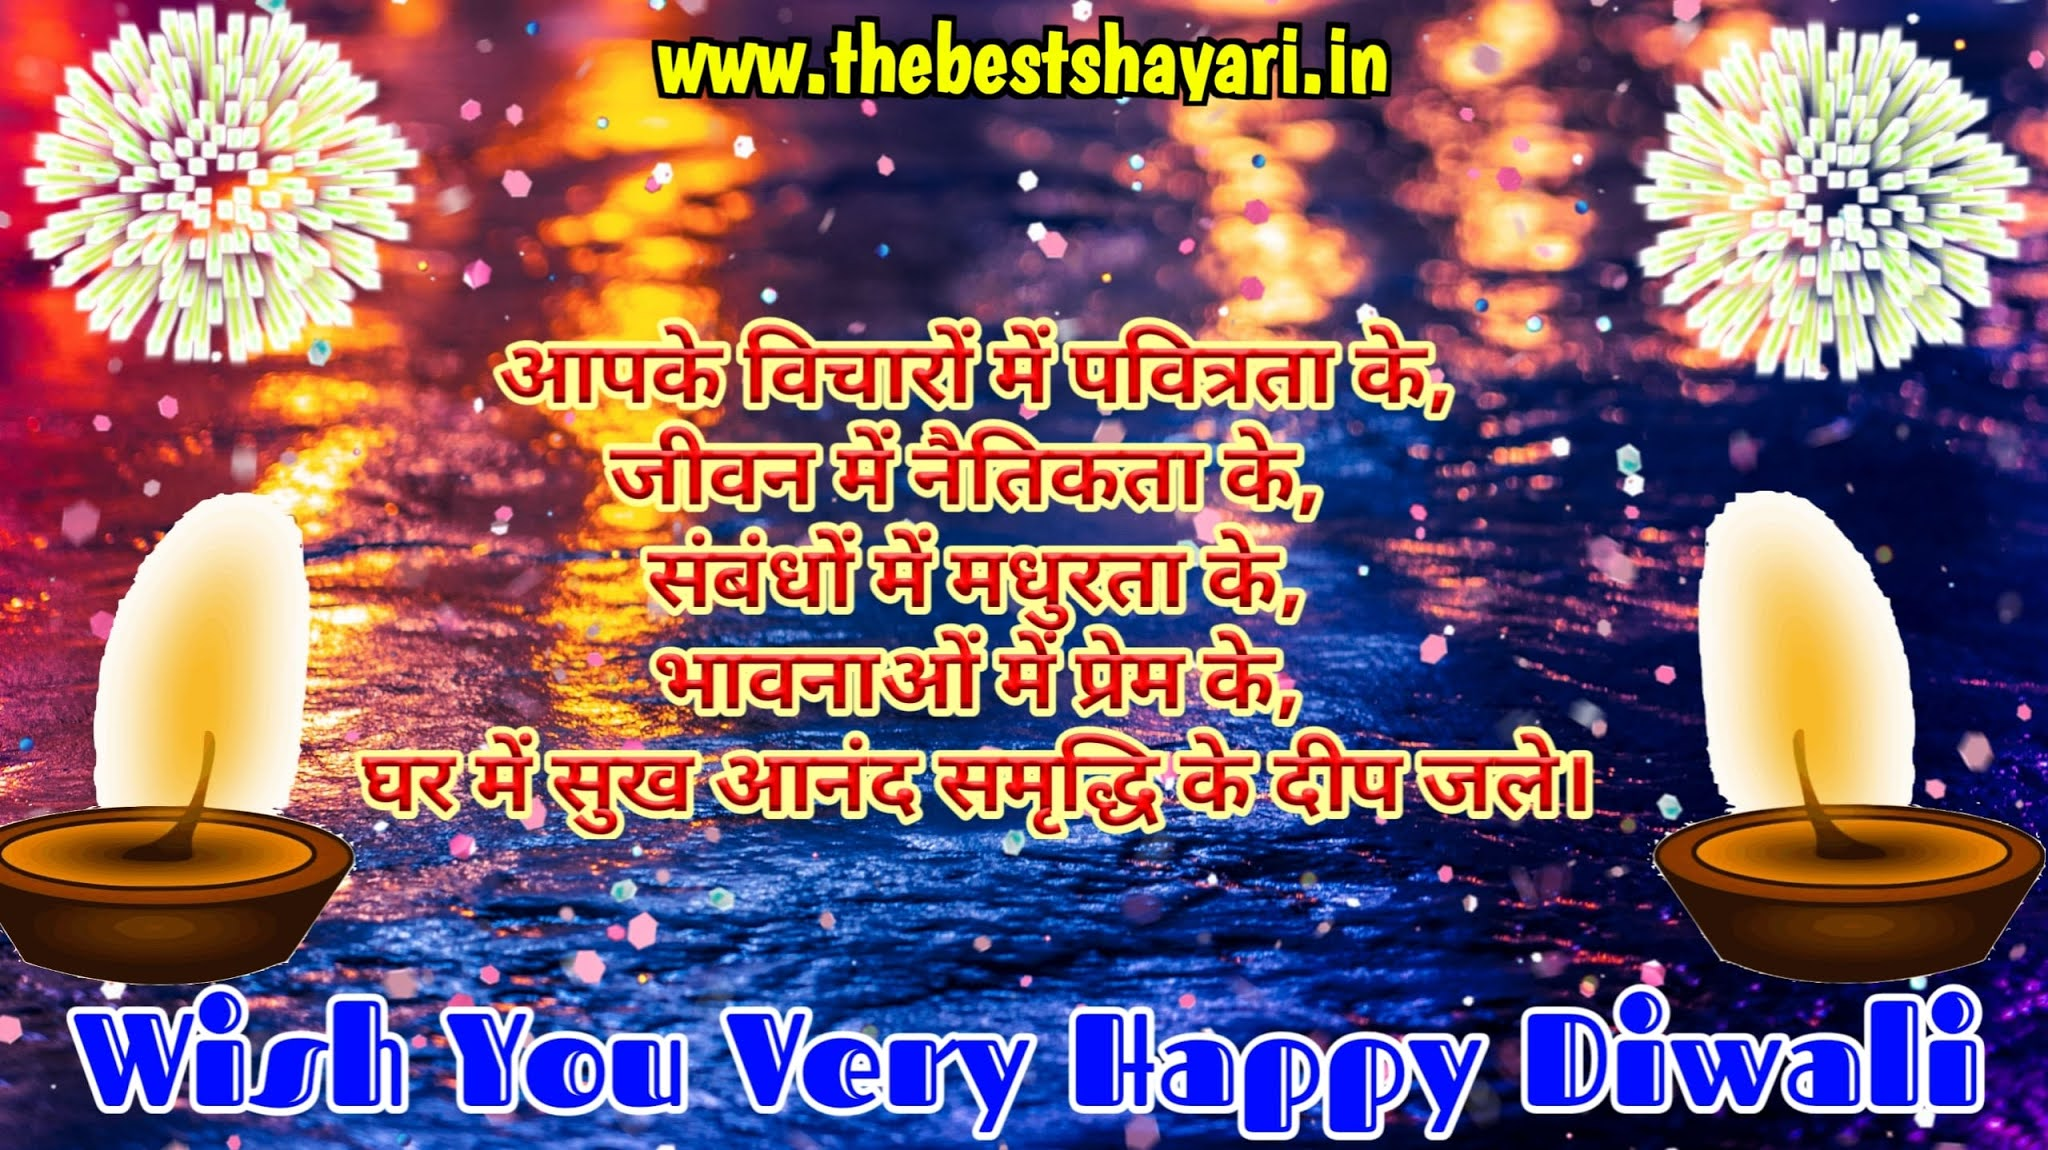 images of happy Diwali wishes